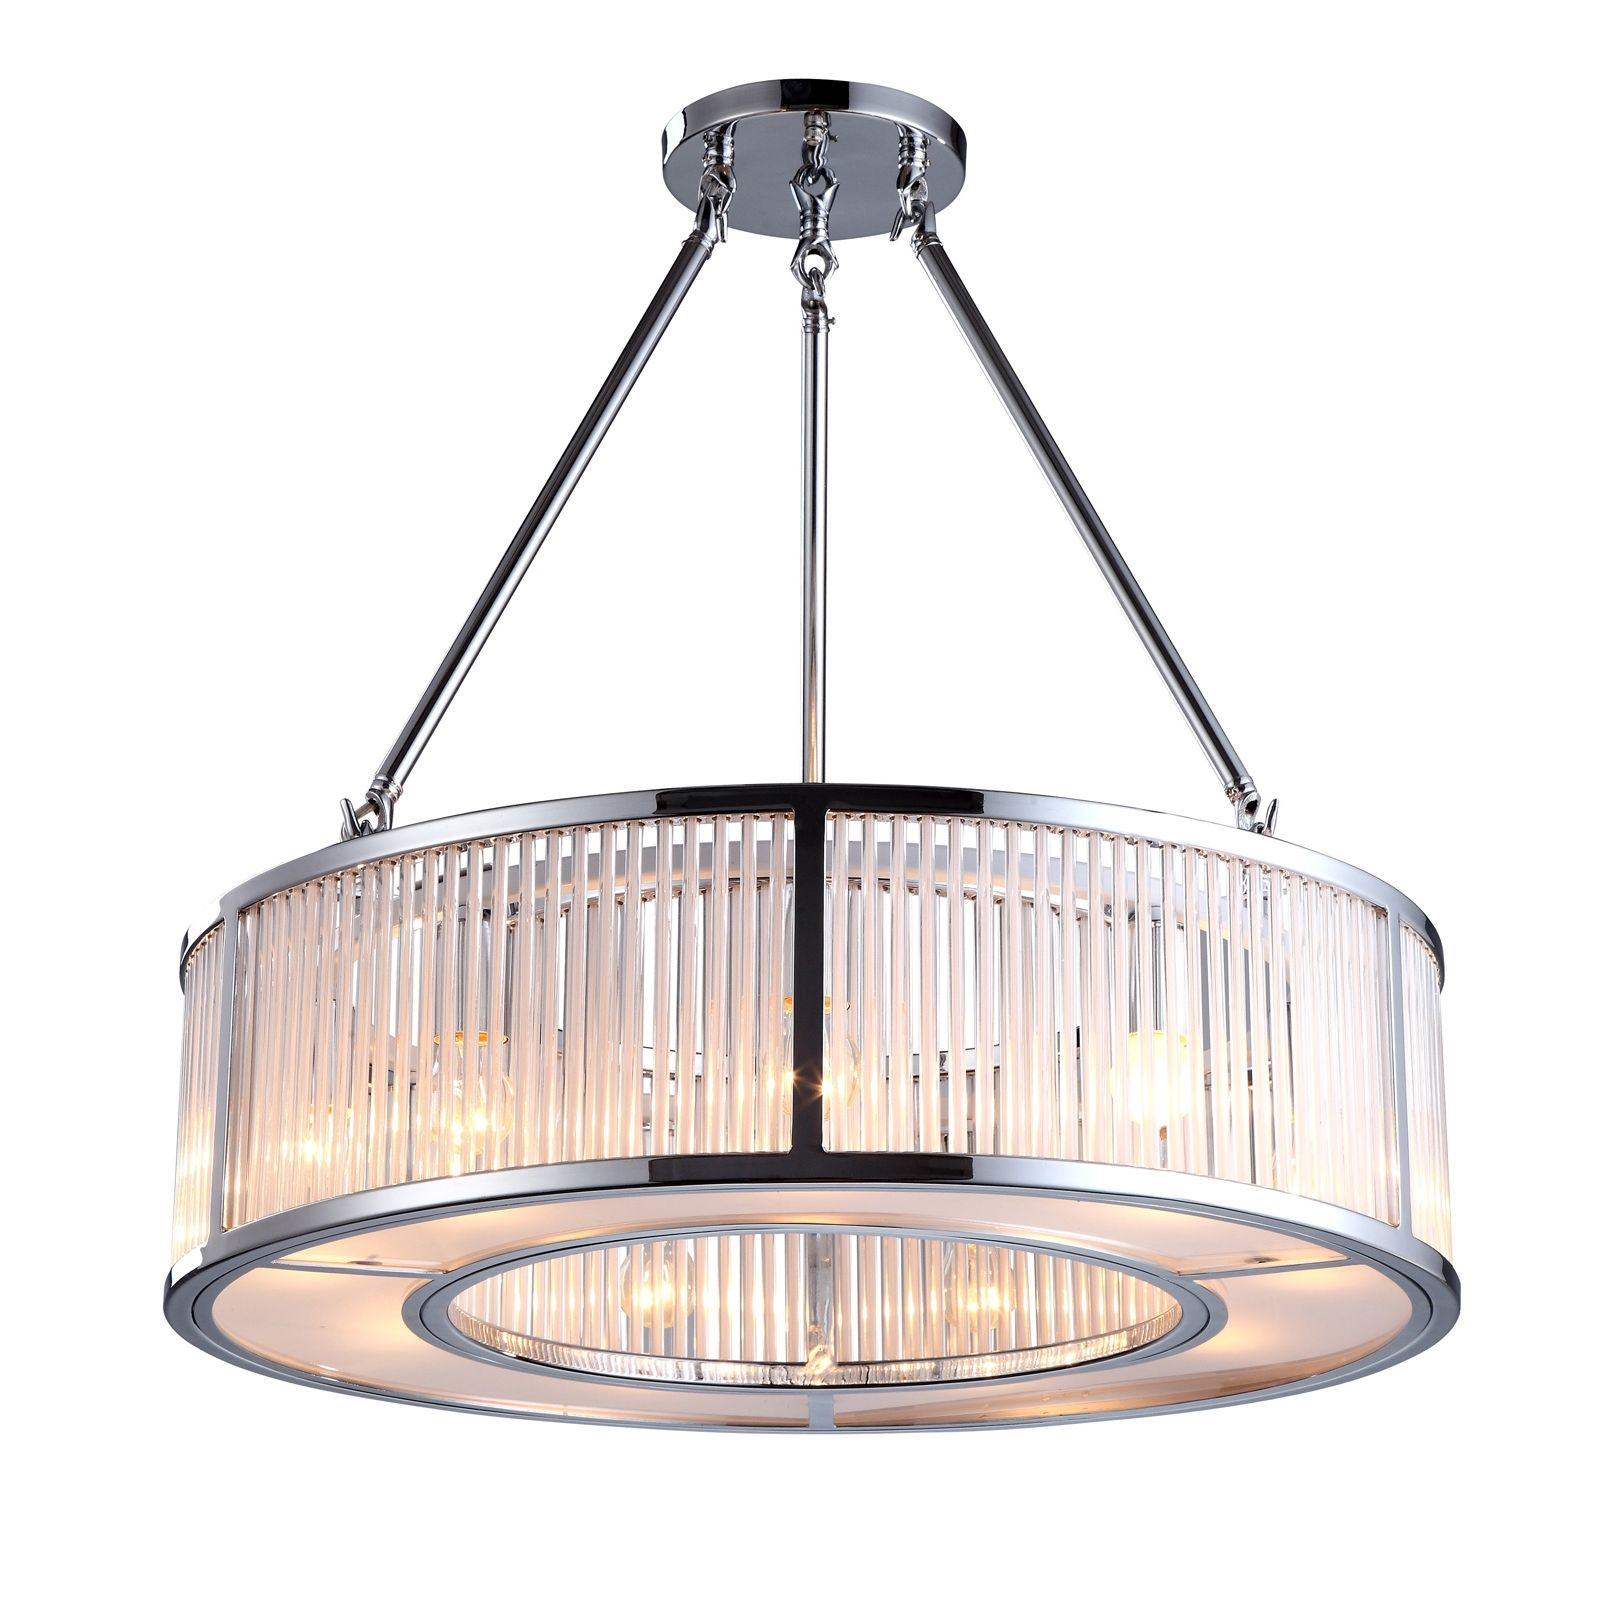 Aston ceiling light chandeliers ceiling lights lighting buy rv astley aston 9 light chandelier online with houseologys price promise full rv astley collection with uk international shipping arubaitofo Image collections